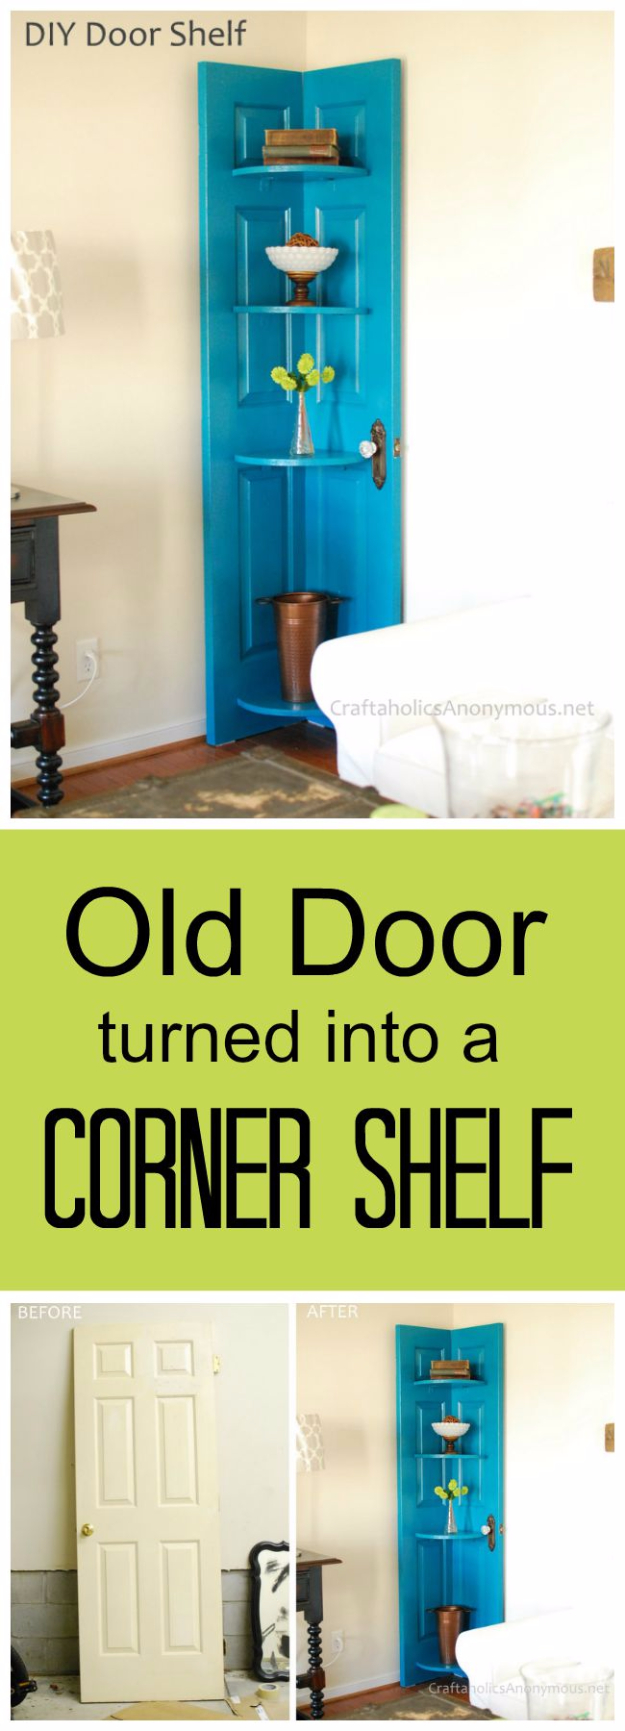 Upcycled Furniture Projects - DIY Door Shelf Tutorial - Repurposed Home Decor and Furniture You Can Make On a Budget. Easy Vintage and Rustic Looks for Bedroom, Bath, Kitchen and Living Room. #upcycled #diyideas #diyfurniture